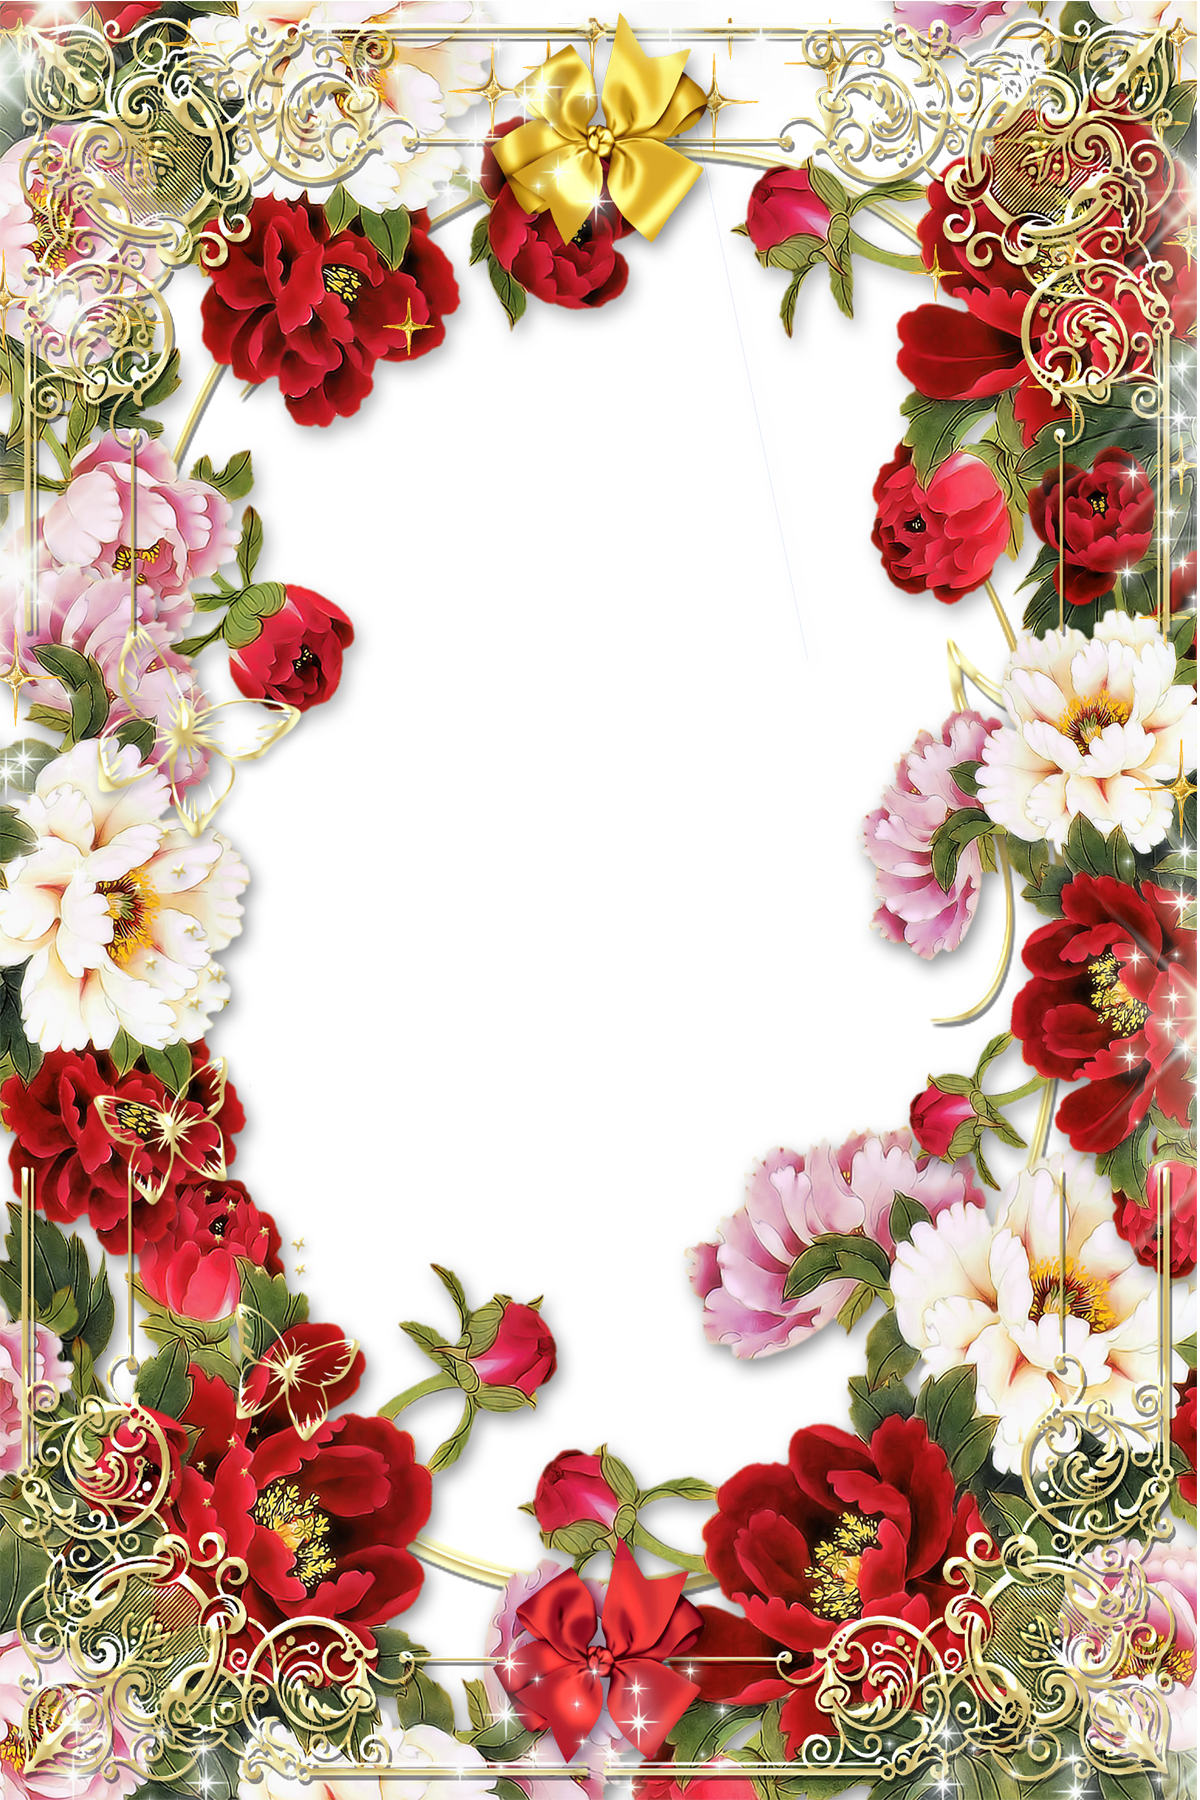 Valentines flower angels frame png. Flowers picture with golden